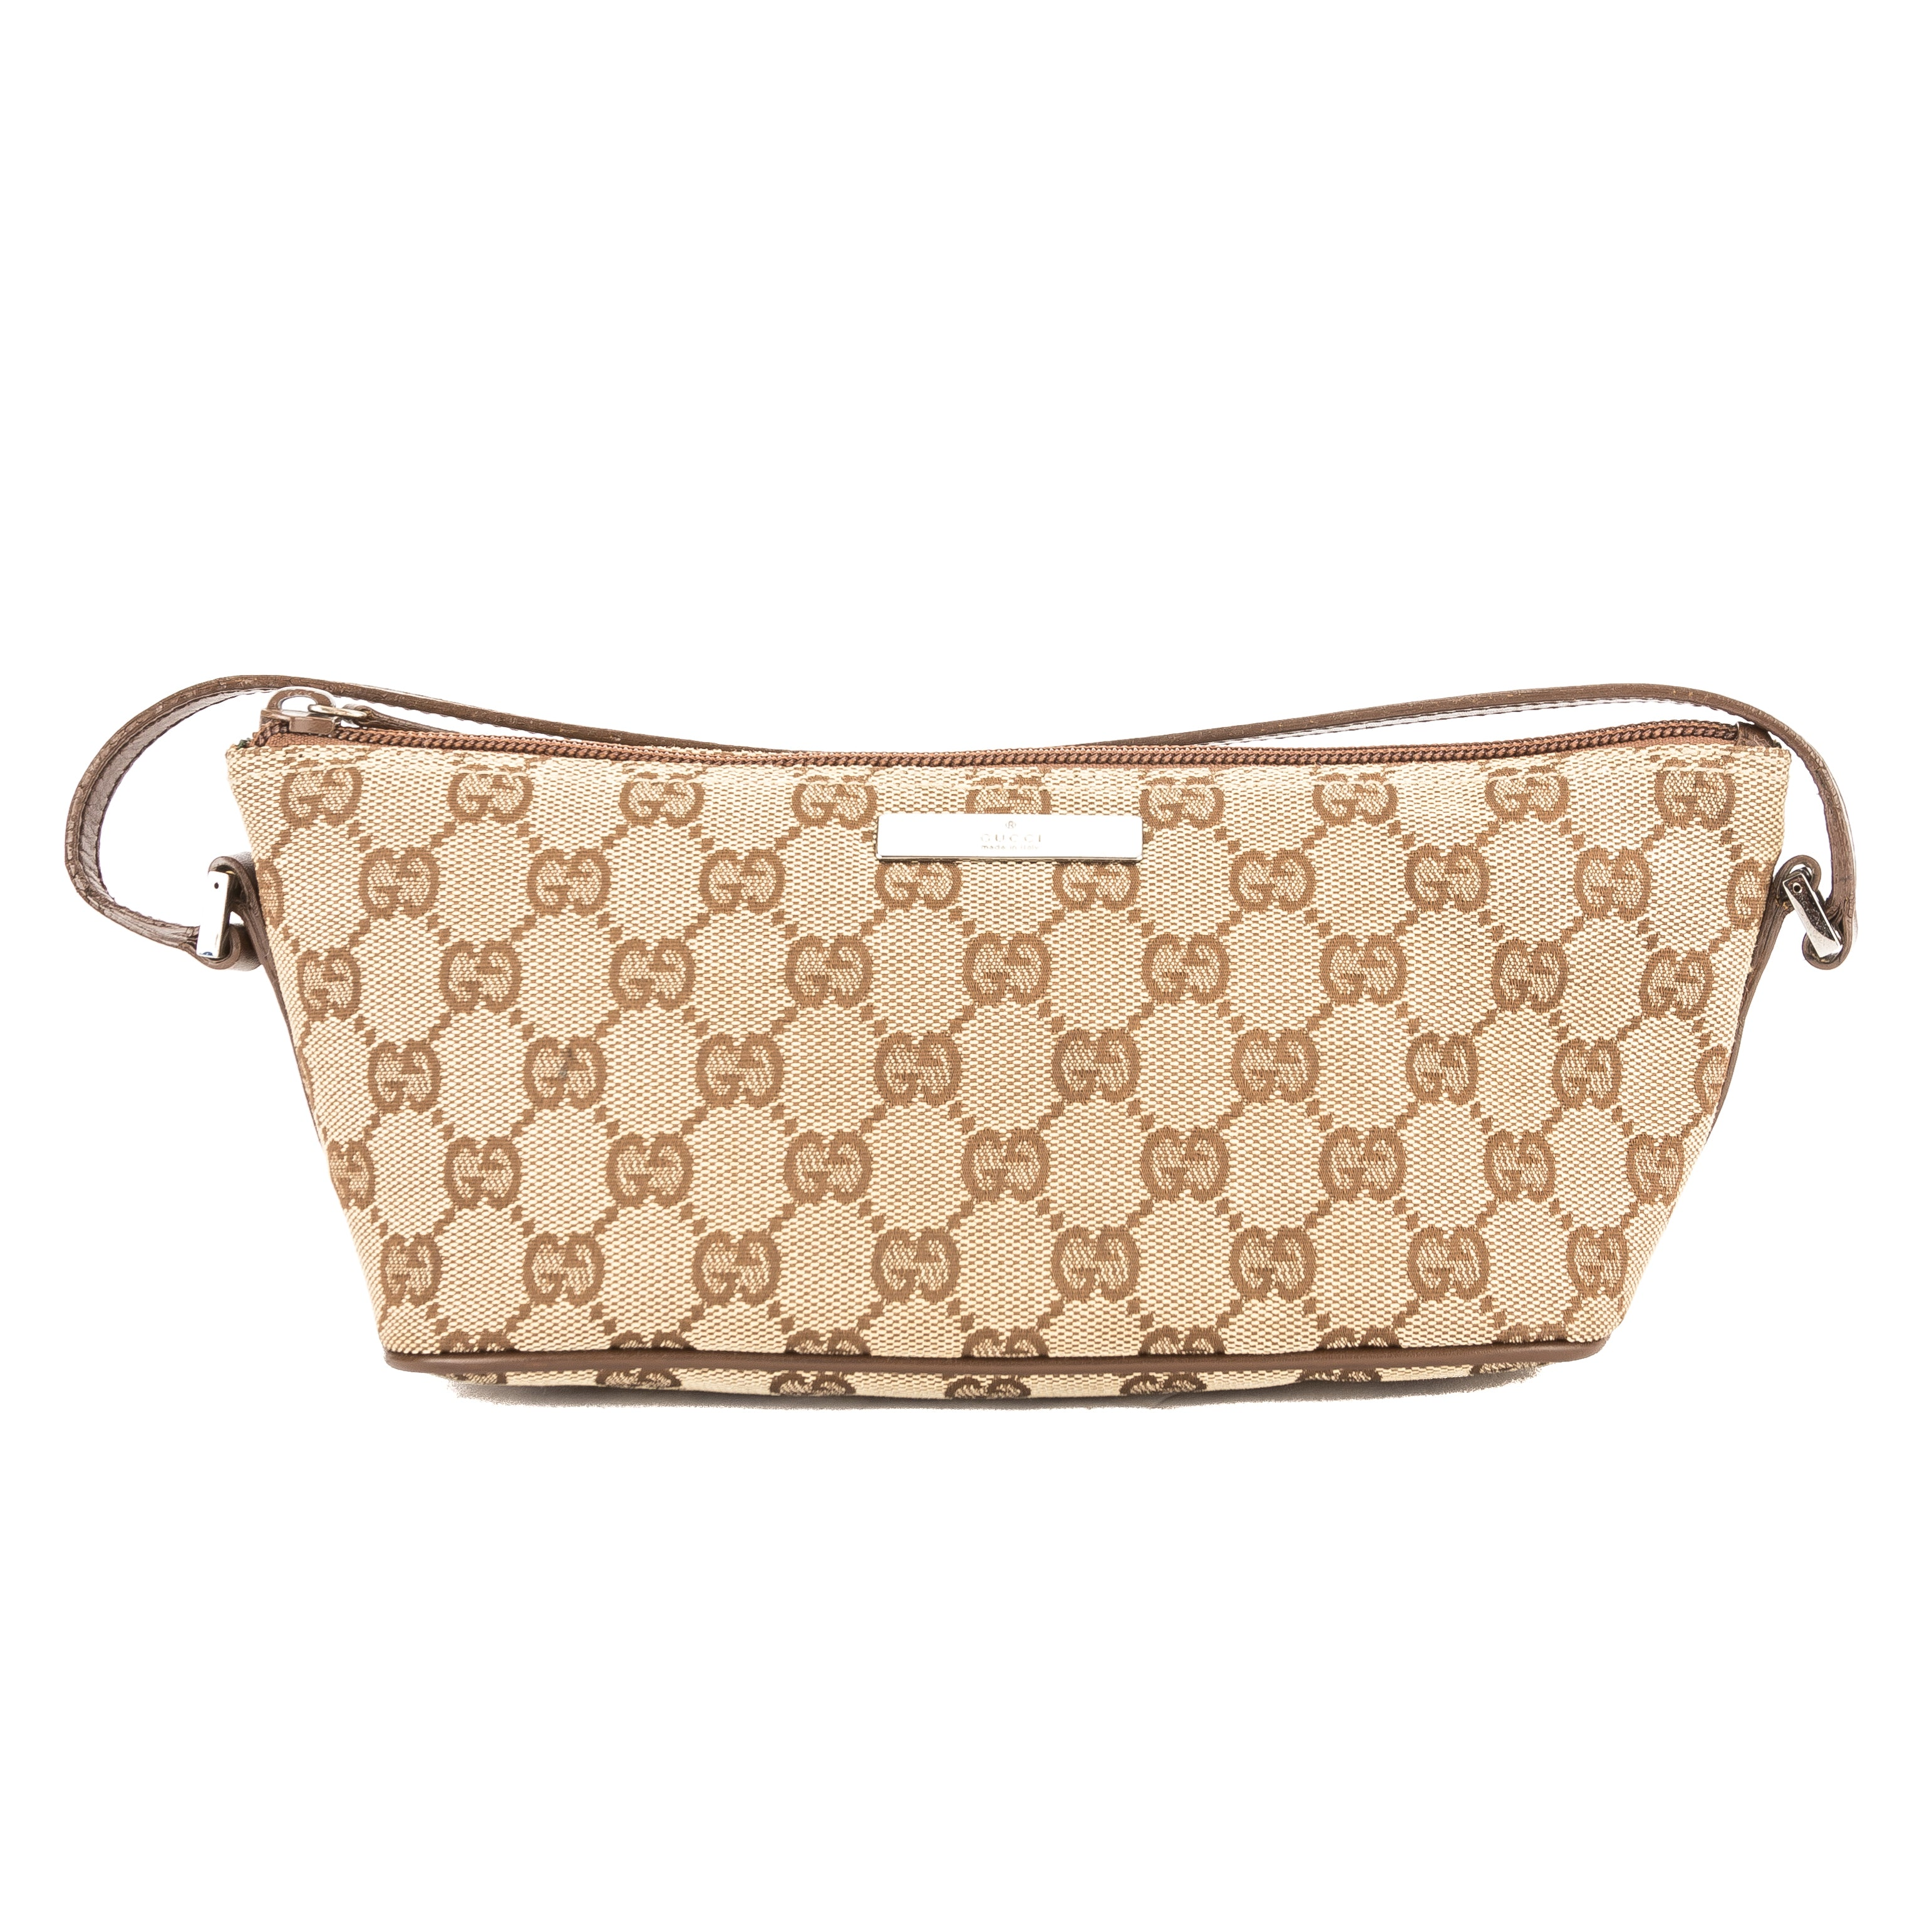 21a920723c9a Gucci Brown Leather GG Monogram Canvas Pochette Bag (Pre Owned ...